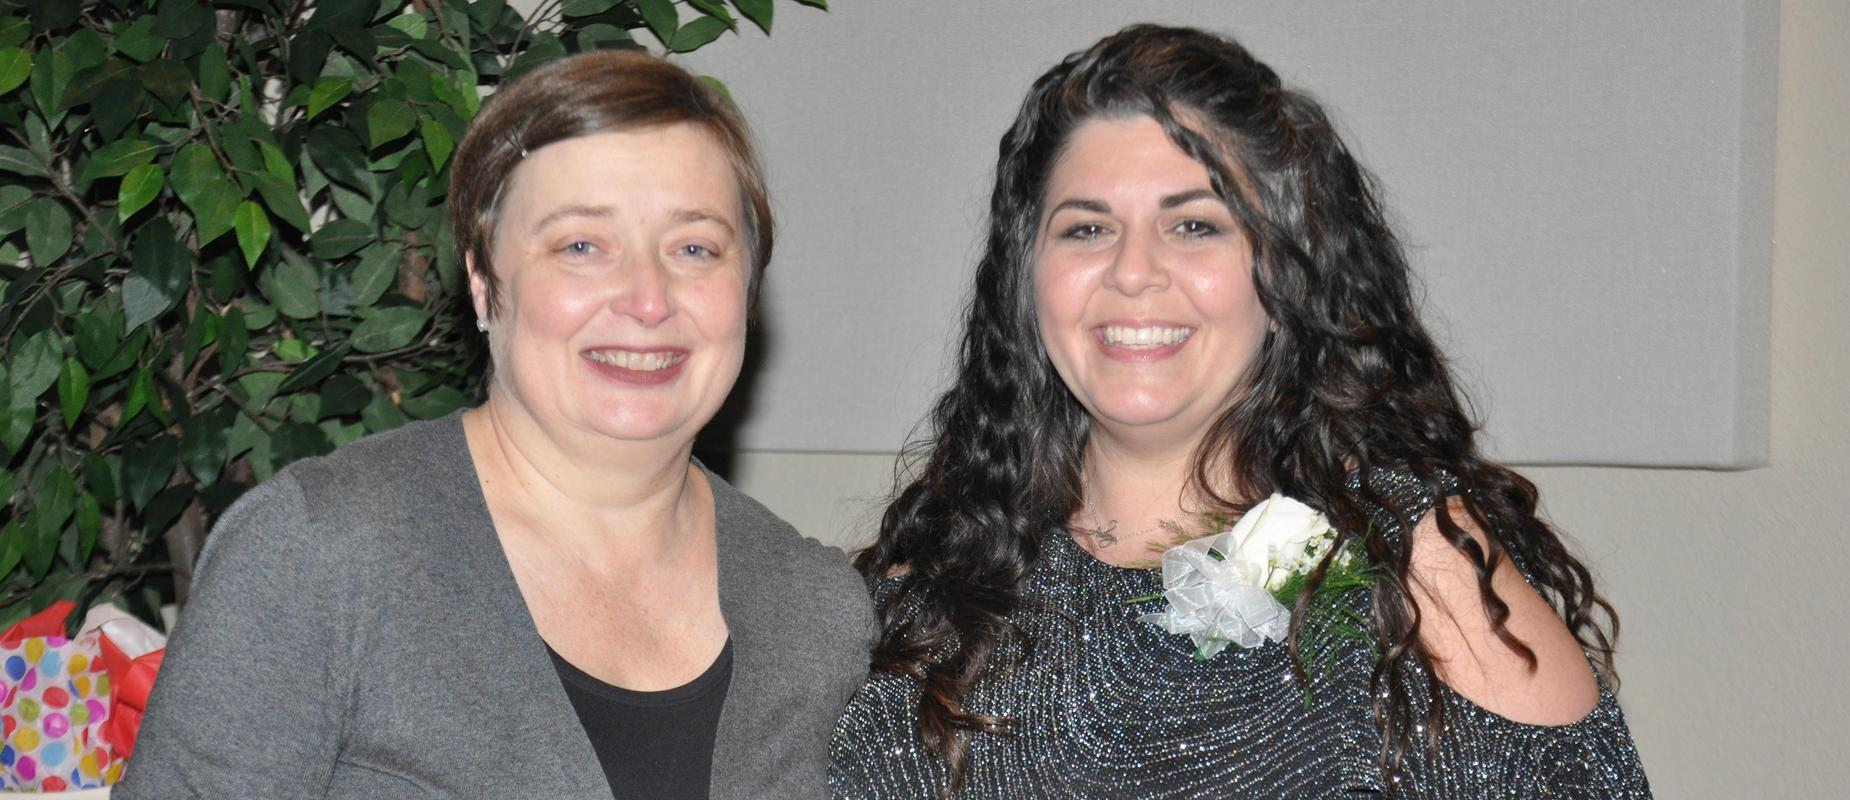 SCMS' Aubrey Berg Named Middle School Teacher of the Year